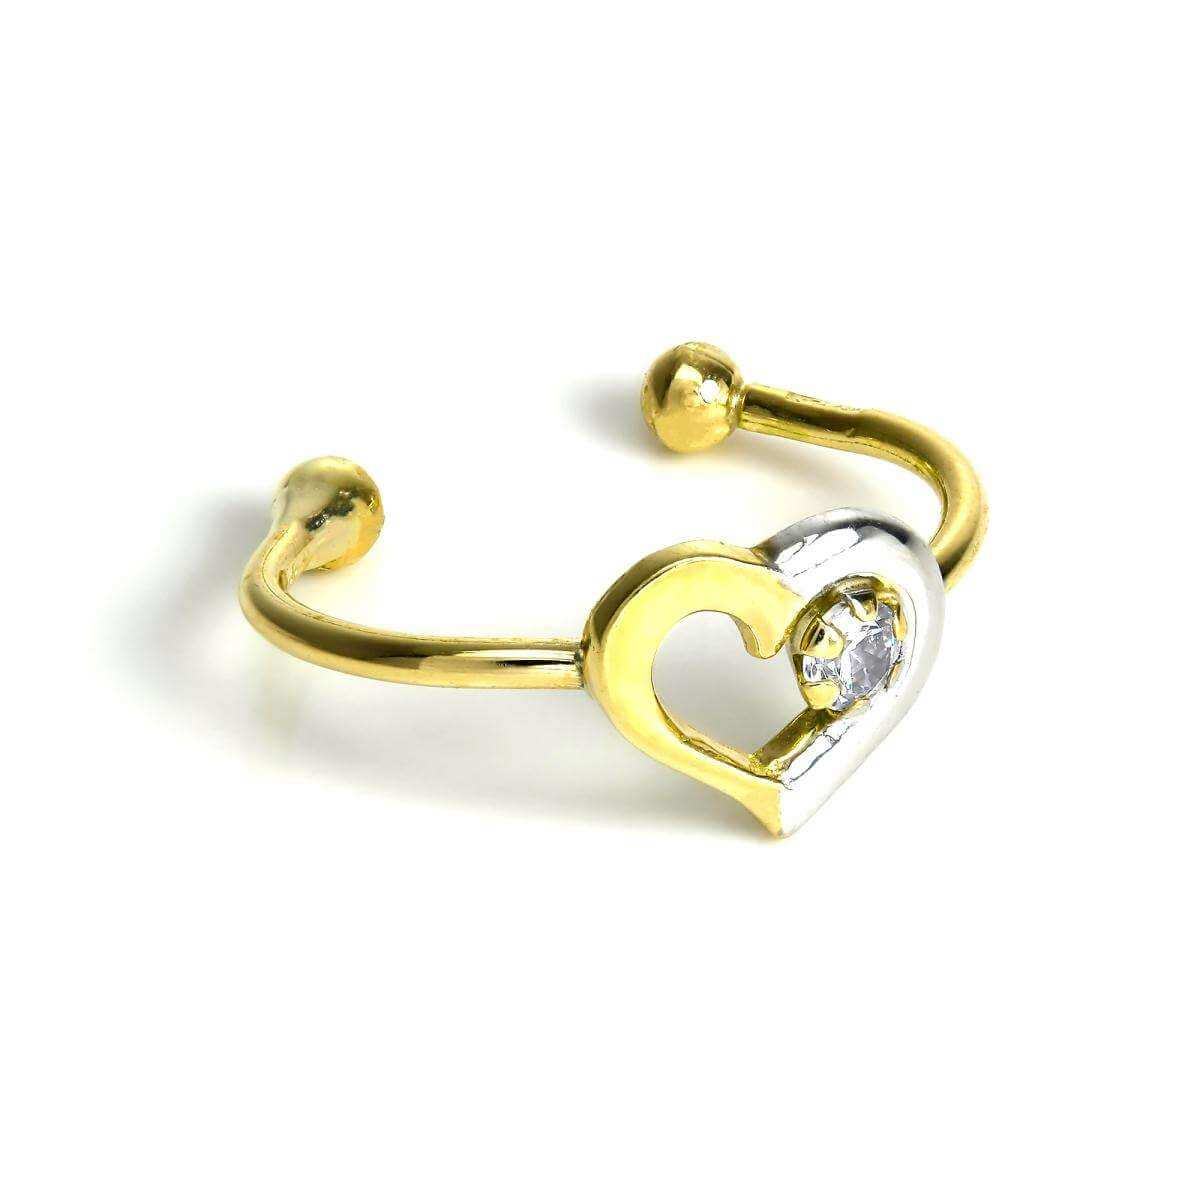 9ct Yellow & White Gold Open Heart Ear Cuff with Small Clear CZ Crystal